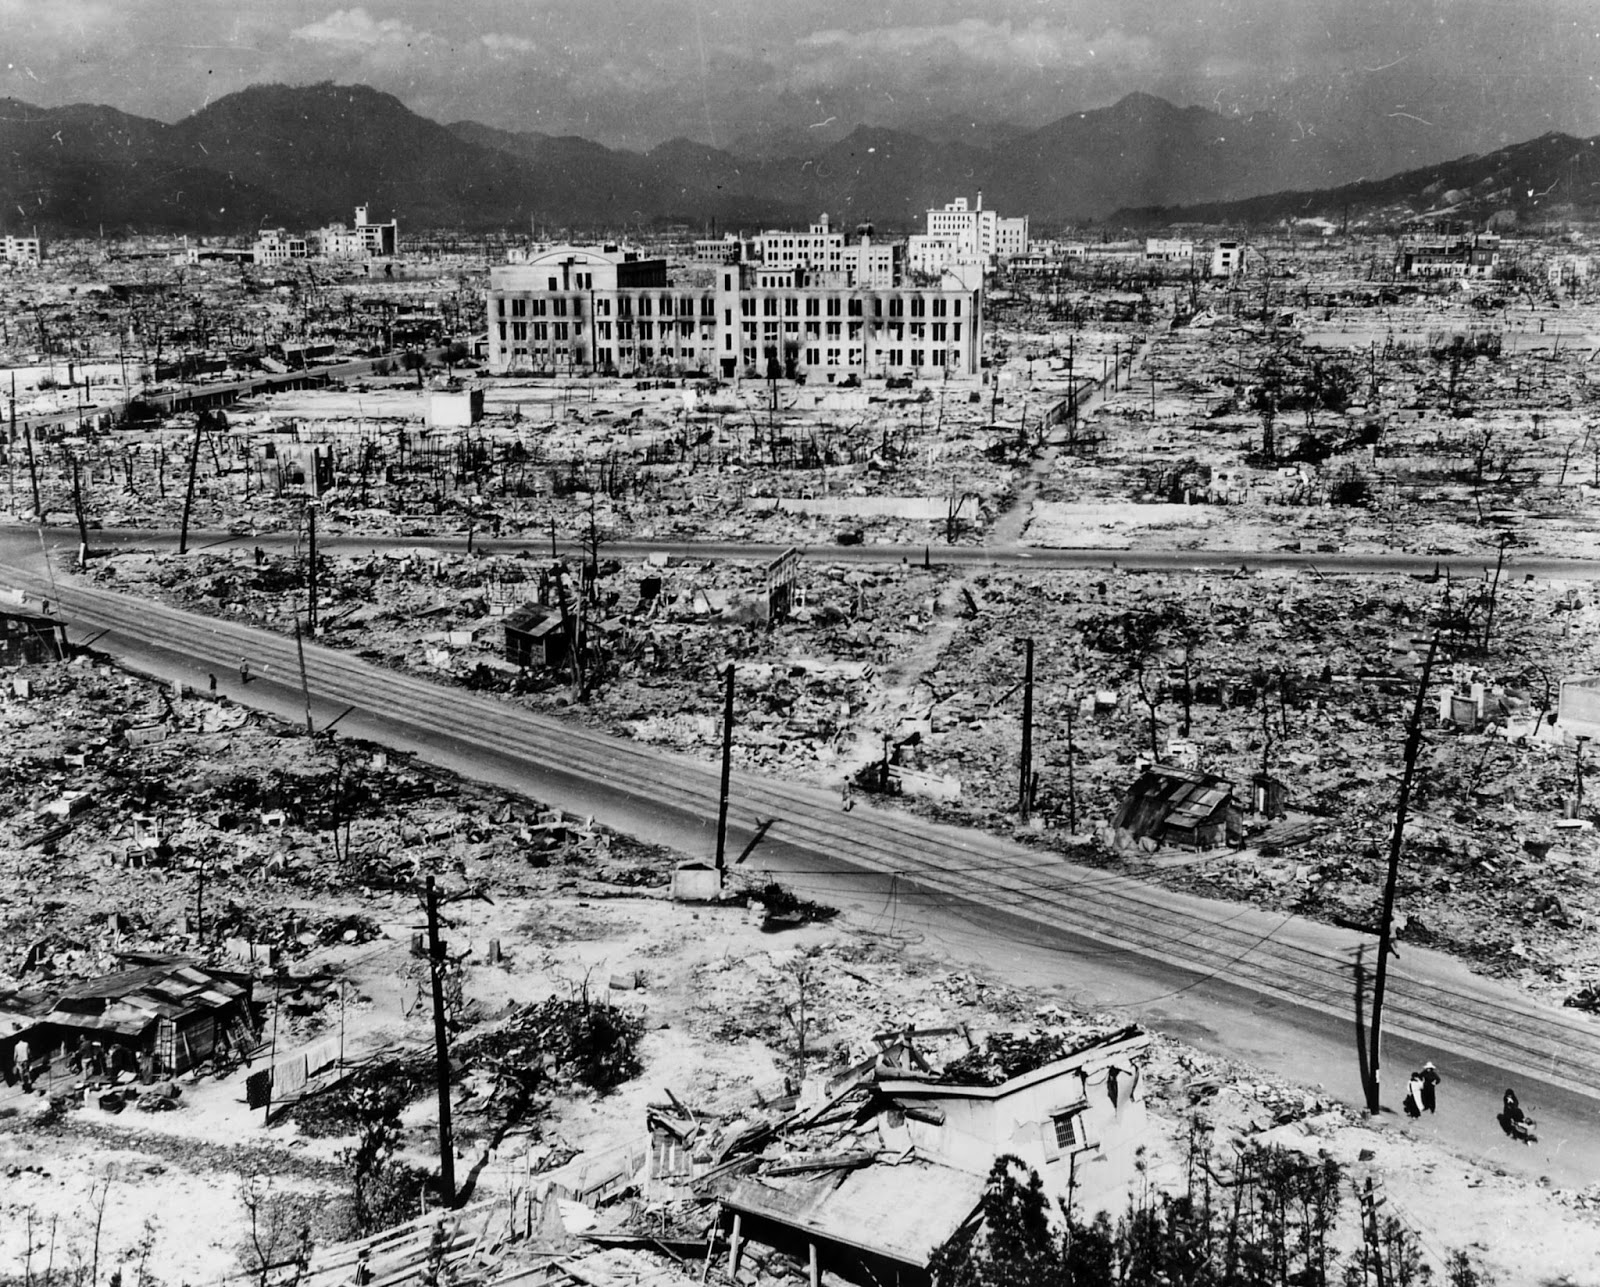 hiroshima mrs hatsuyo nakamura Mrs hatsuyo nakamura a tailors widow living in hiroshima who narrowly escapes the disaster when the explosion destroys her house.